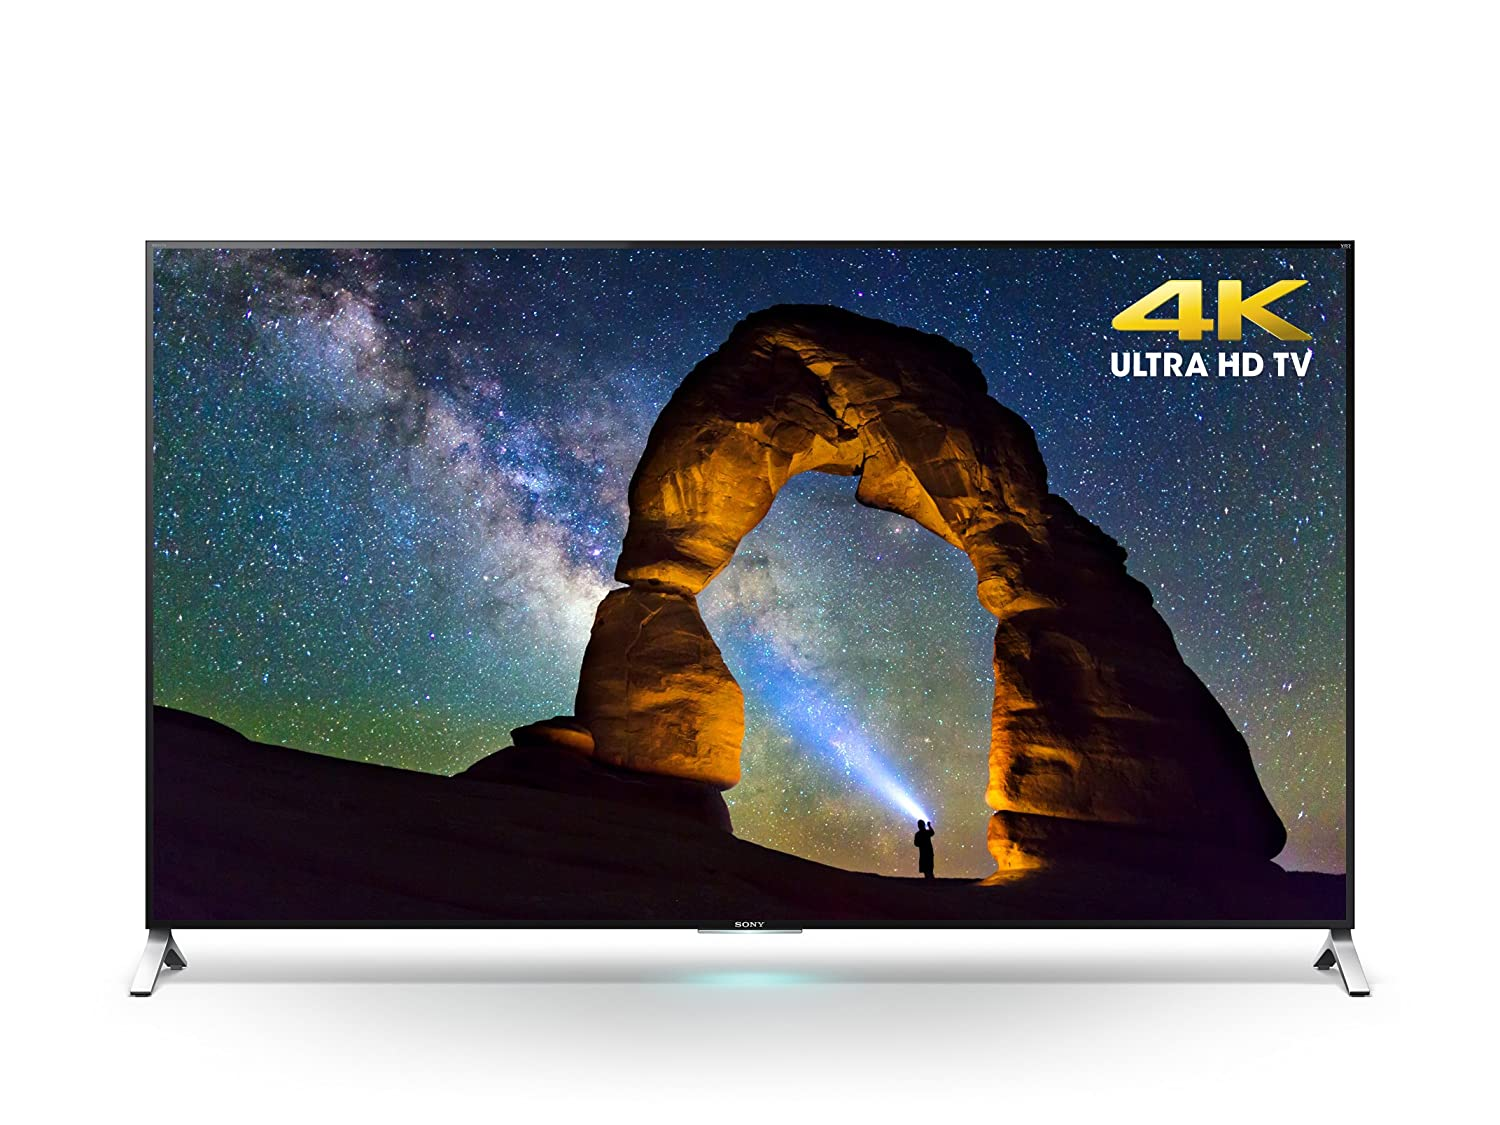 Sony XBR75X910C 75-Inch 4K Ultra HD 3D Smart LED TV (2015 Model)